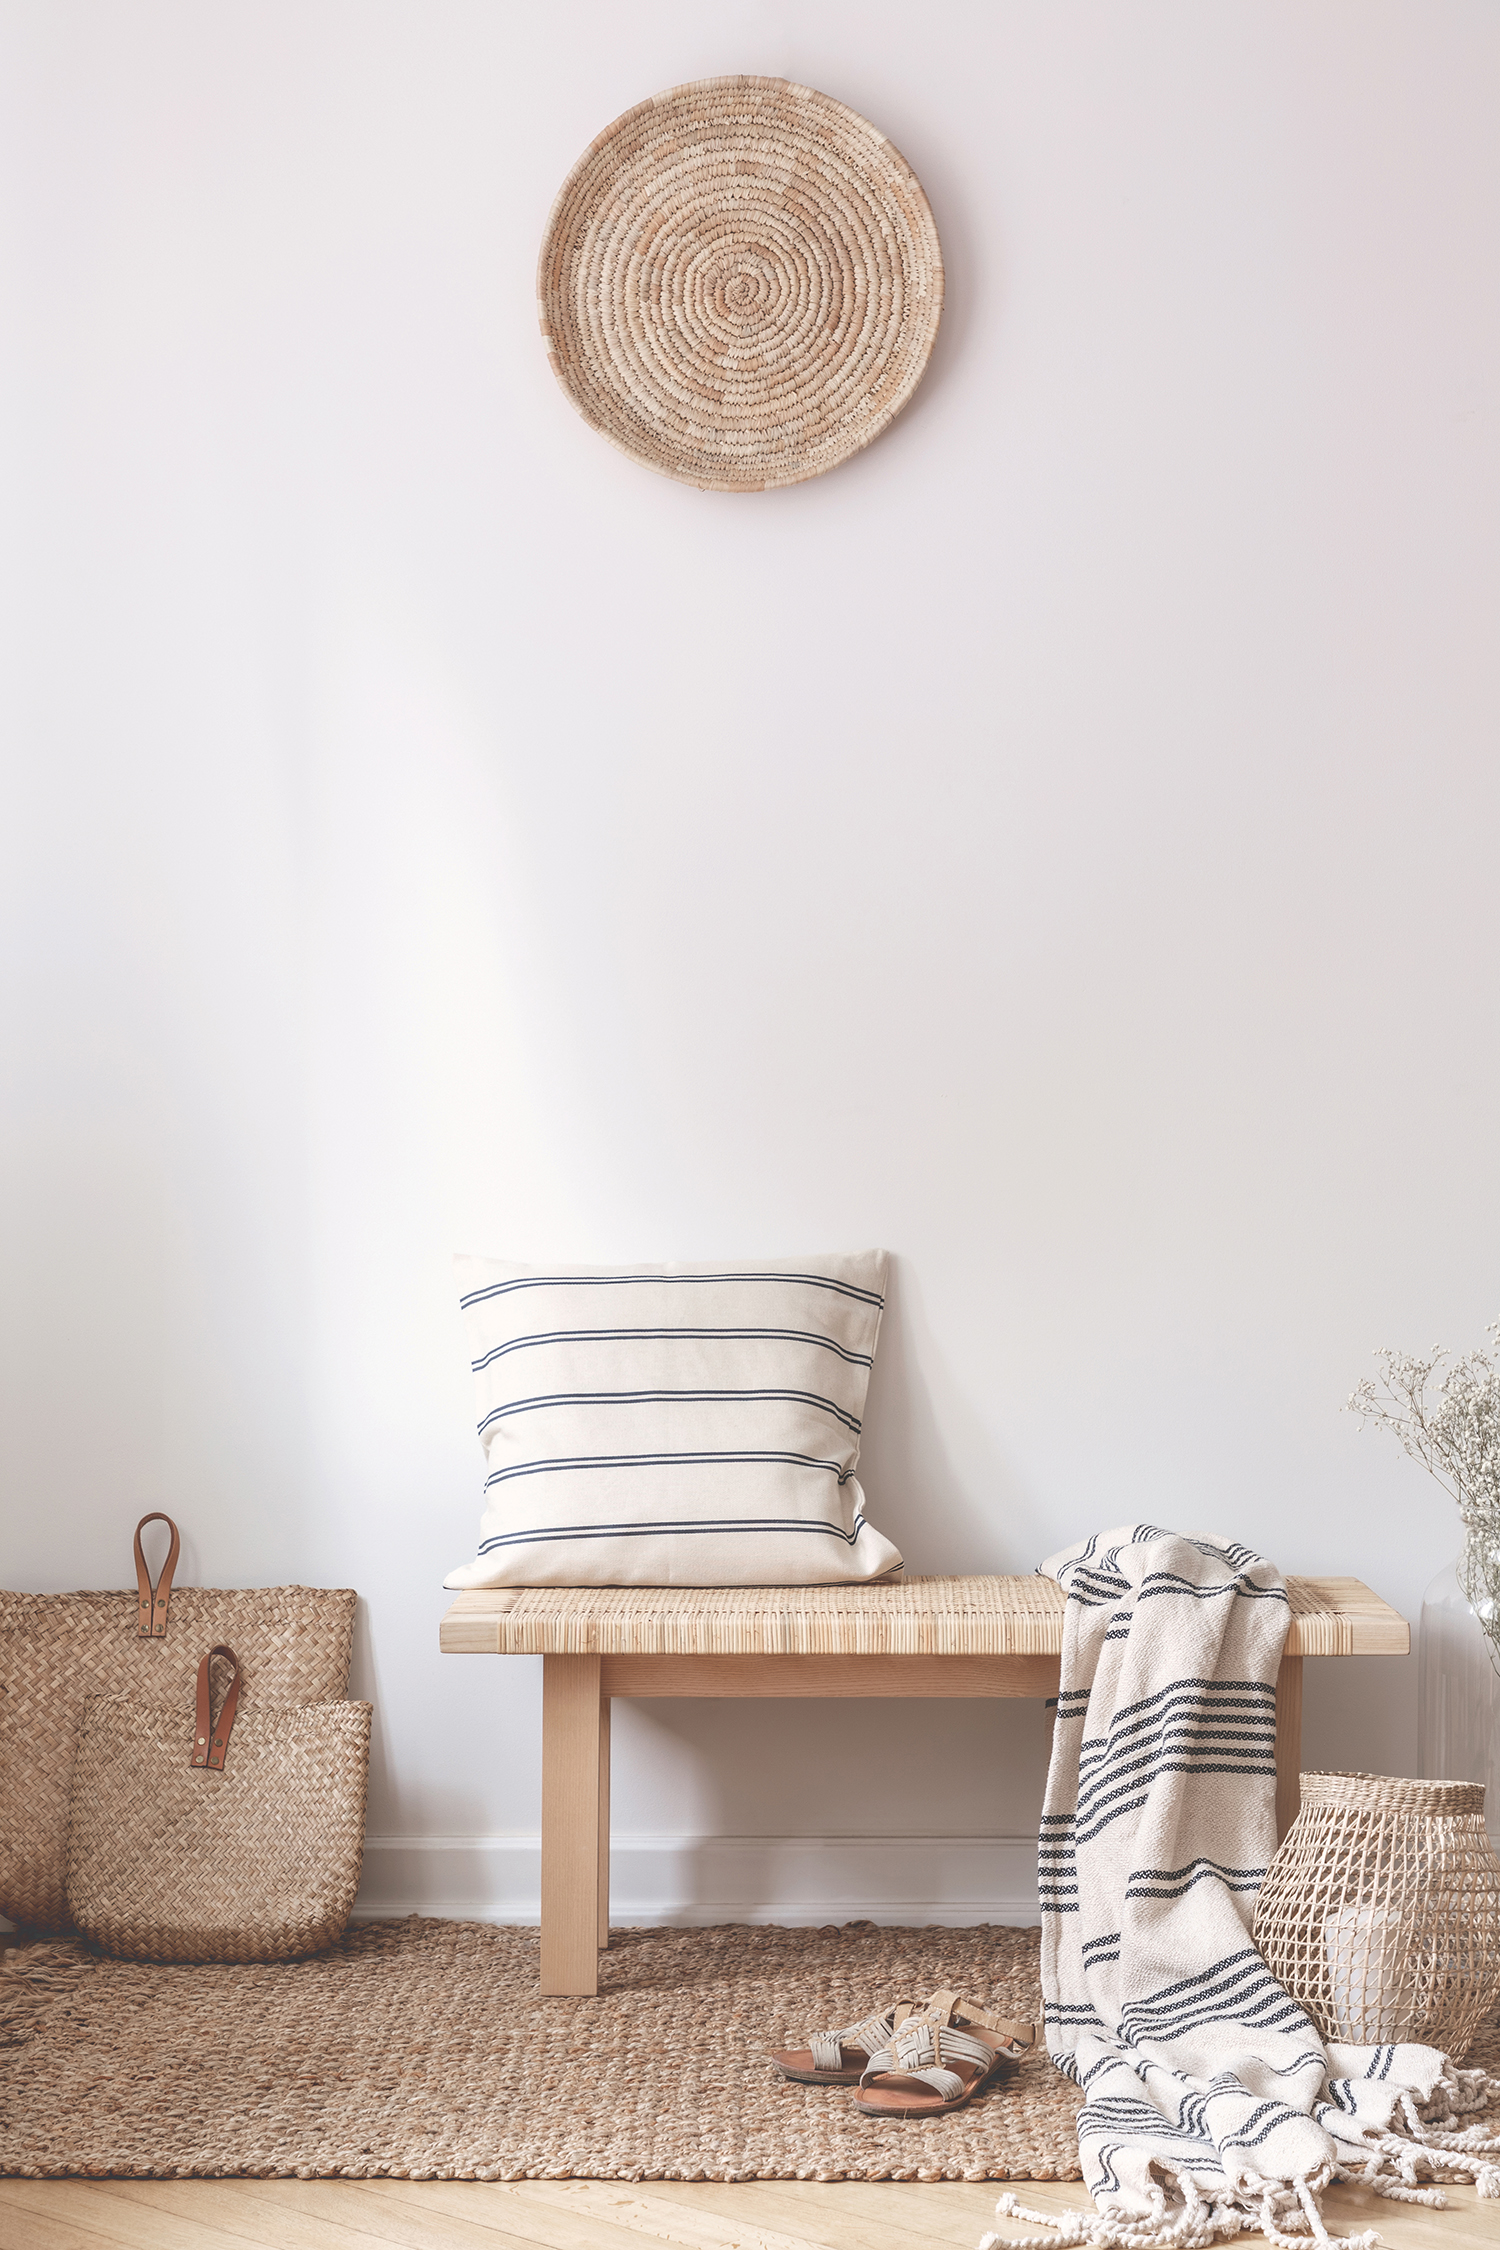 pillow-and-blanket-on-wooden-stool-in-white-5AGUDWR.jpg